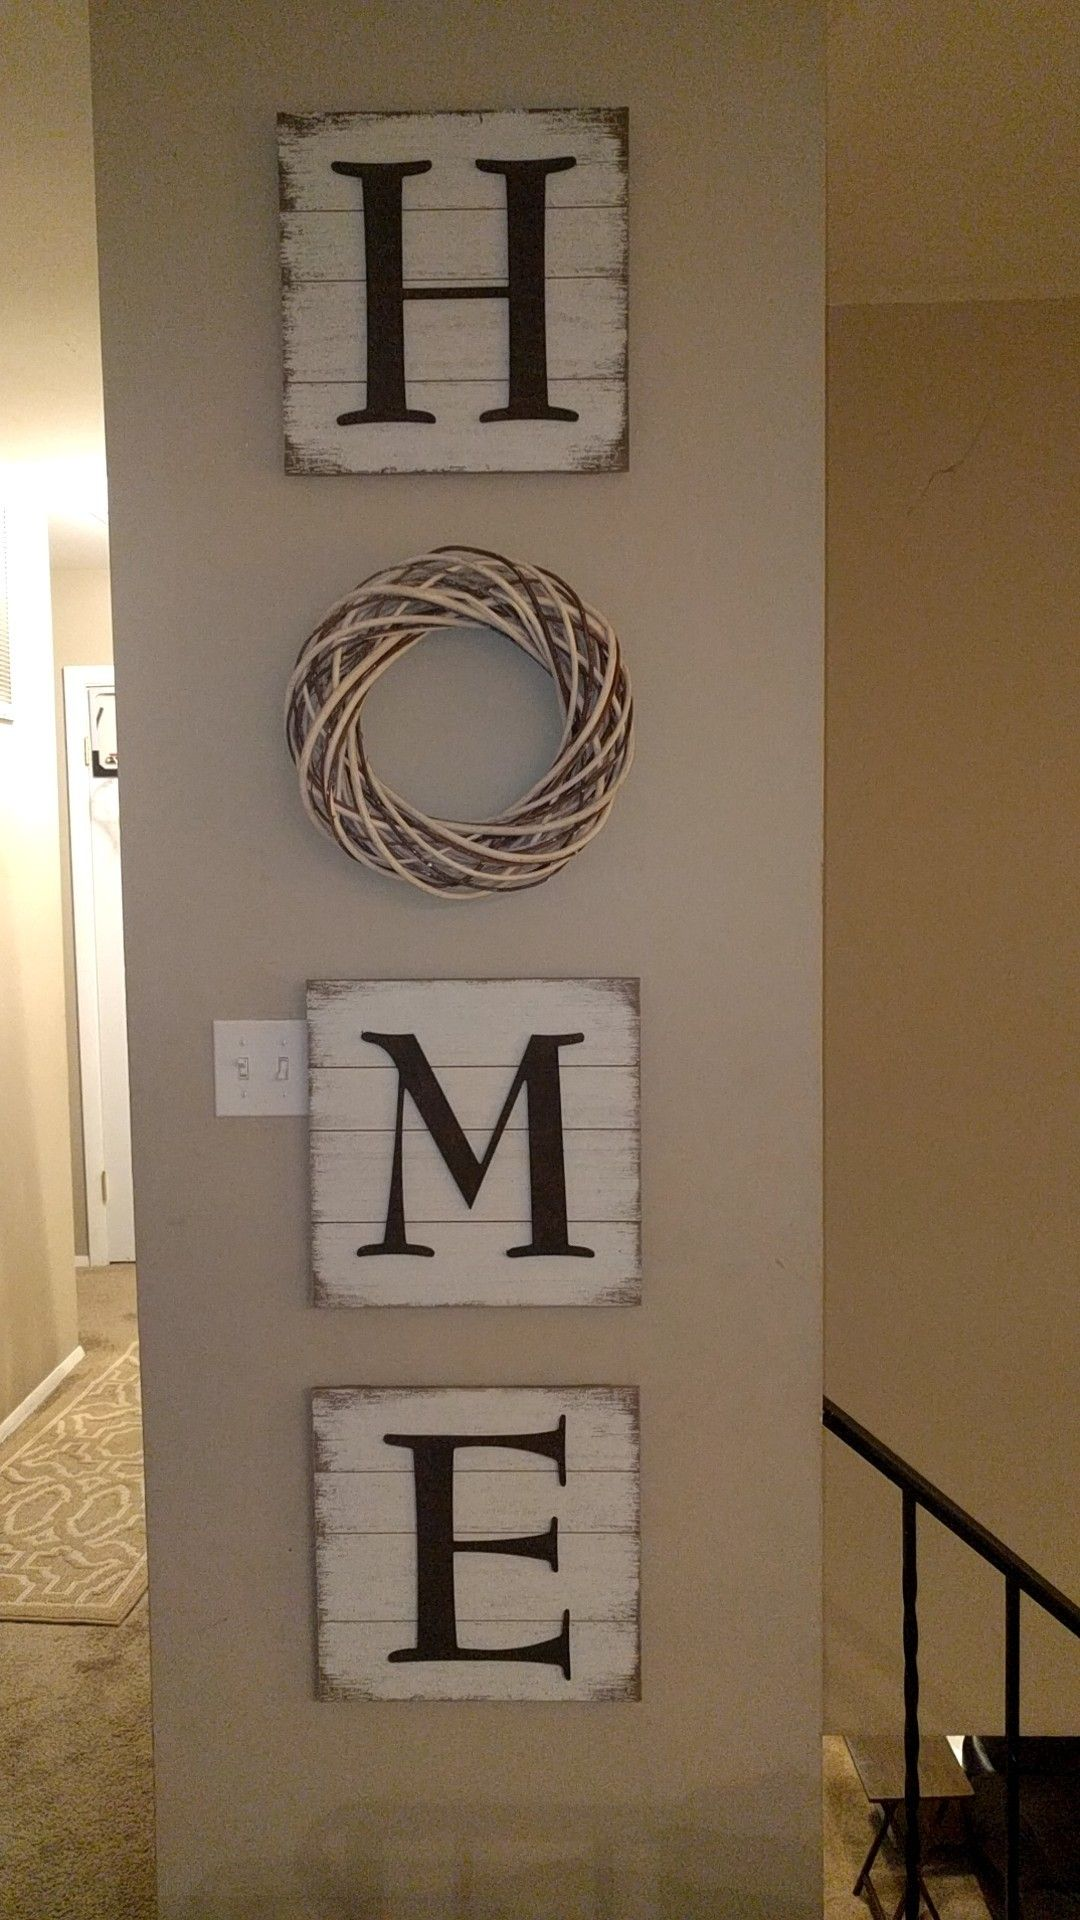 Whitewashed Wood Pallet Letters From Hobby Lobby Wreath Also From Hobby Lobby Whitewash Wood Wood Pallets Decor